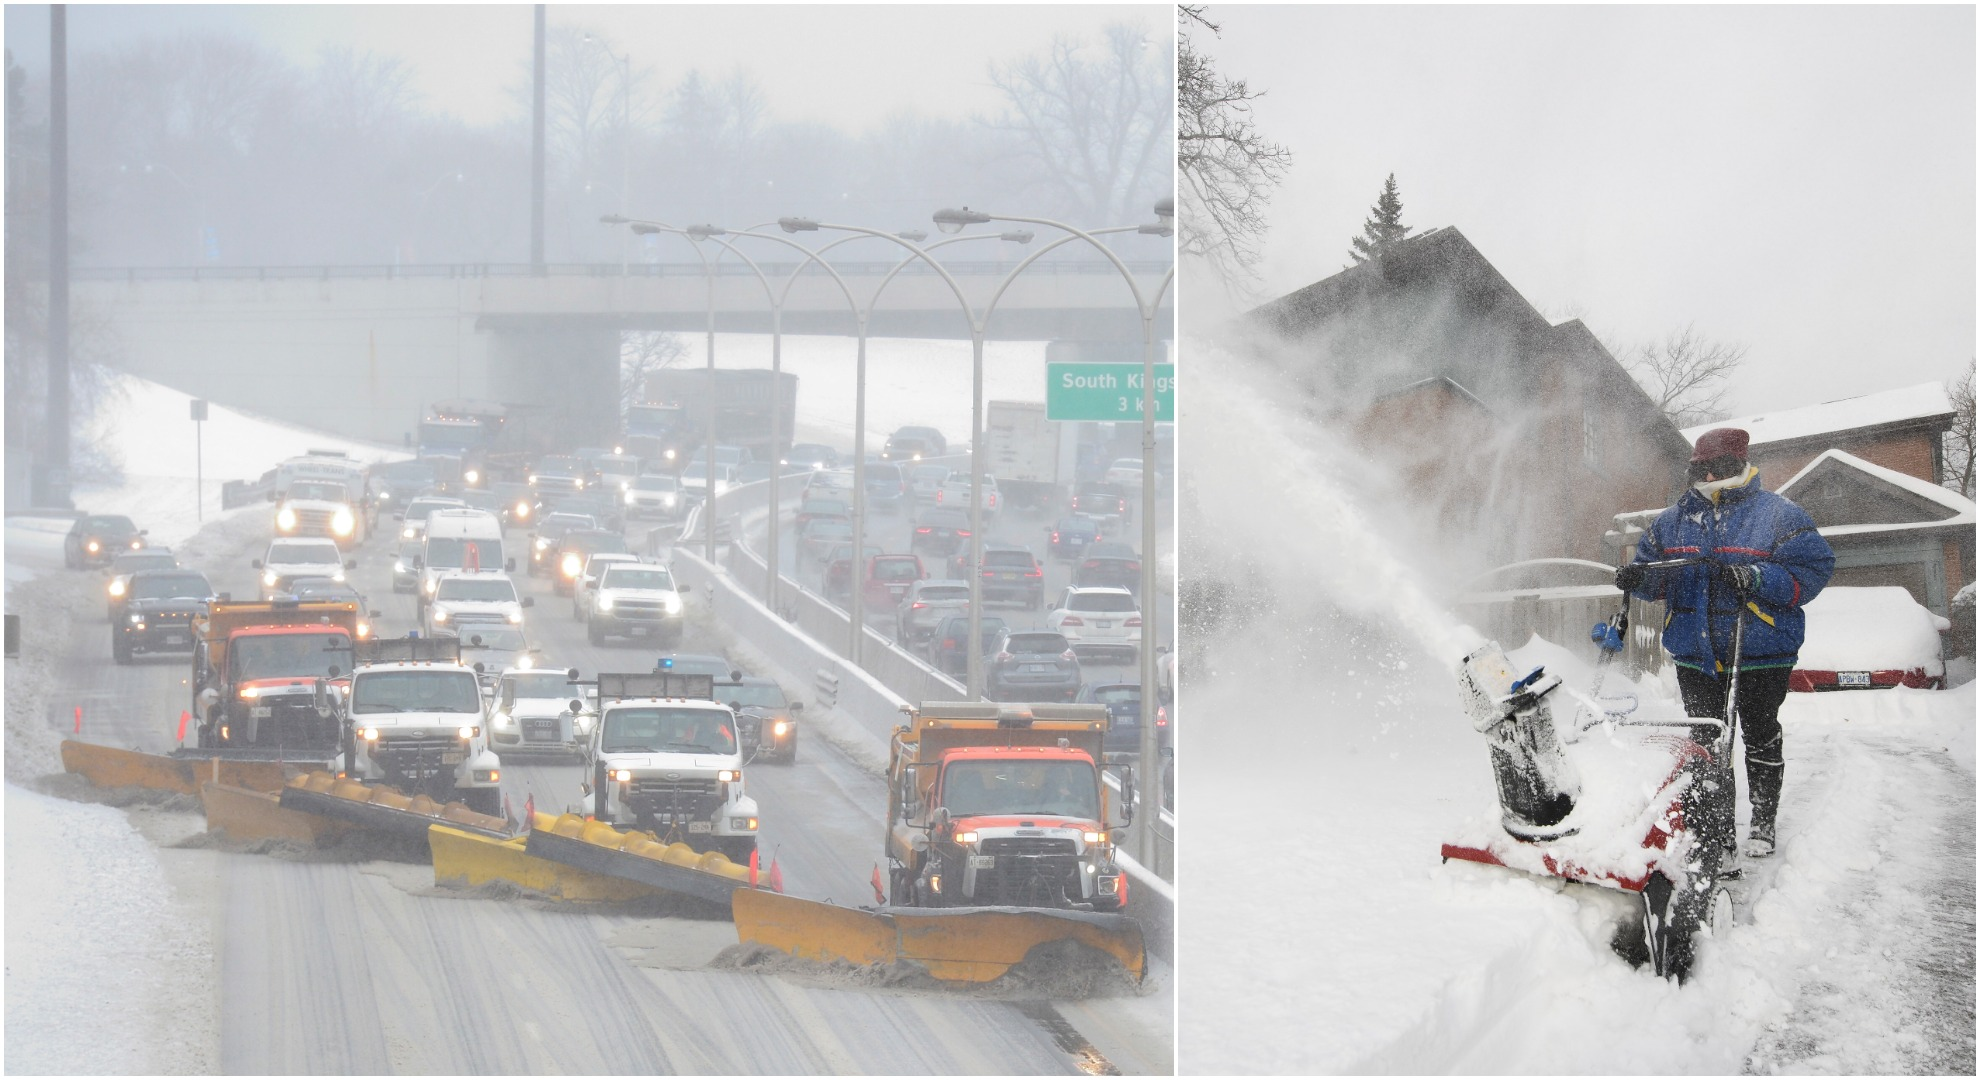 Cold and snowy': Farmers' Almanac forecasts brutal winter